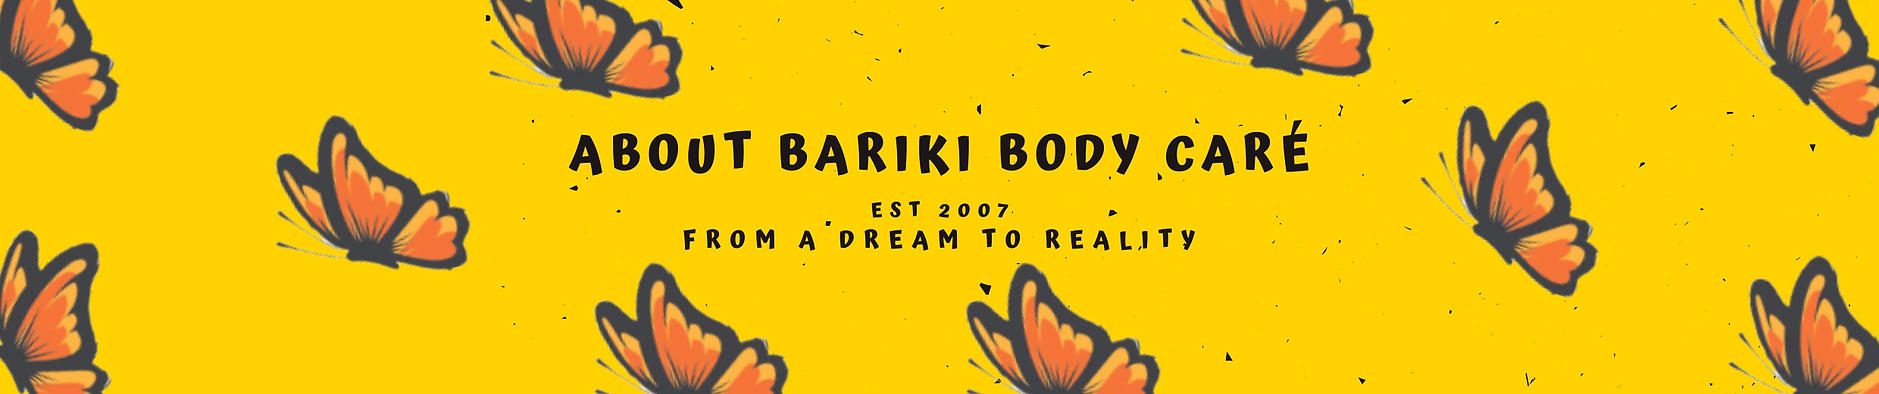 About Bariki Body cAre.png